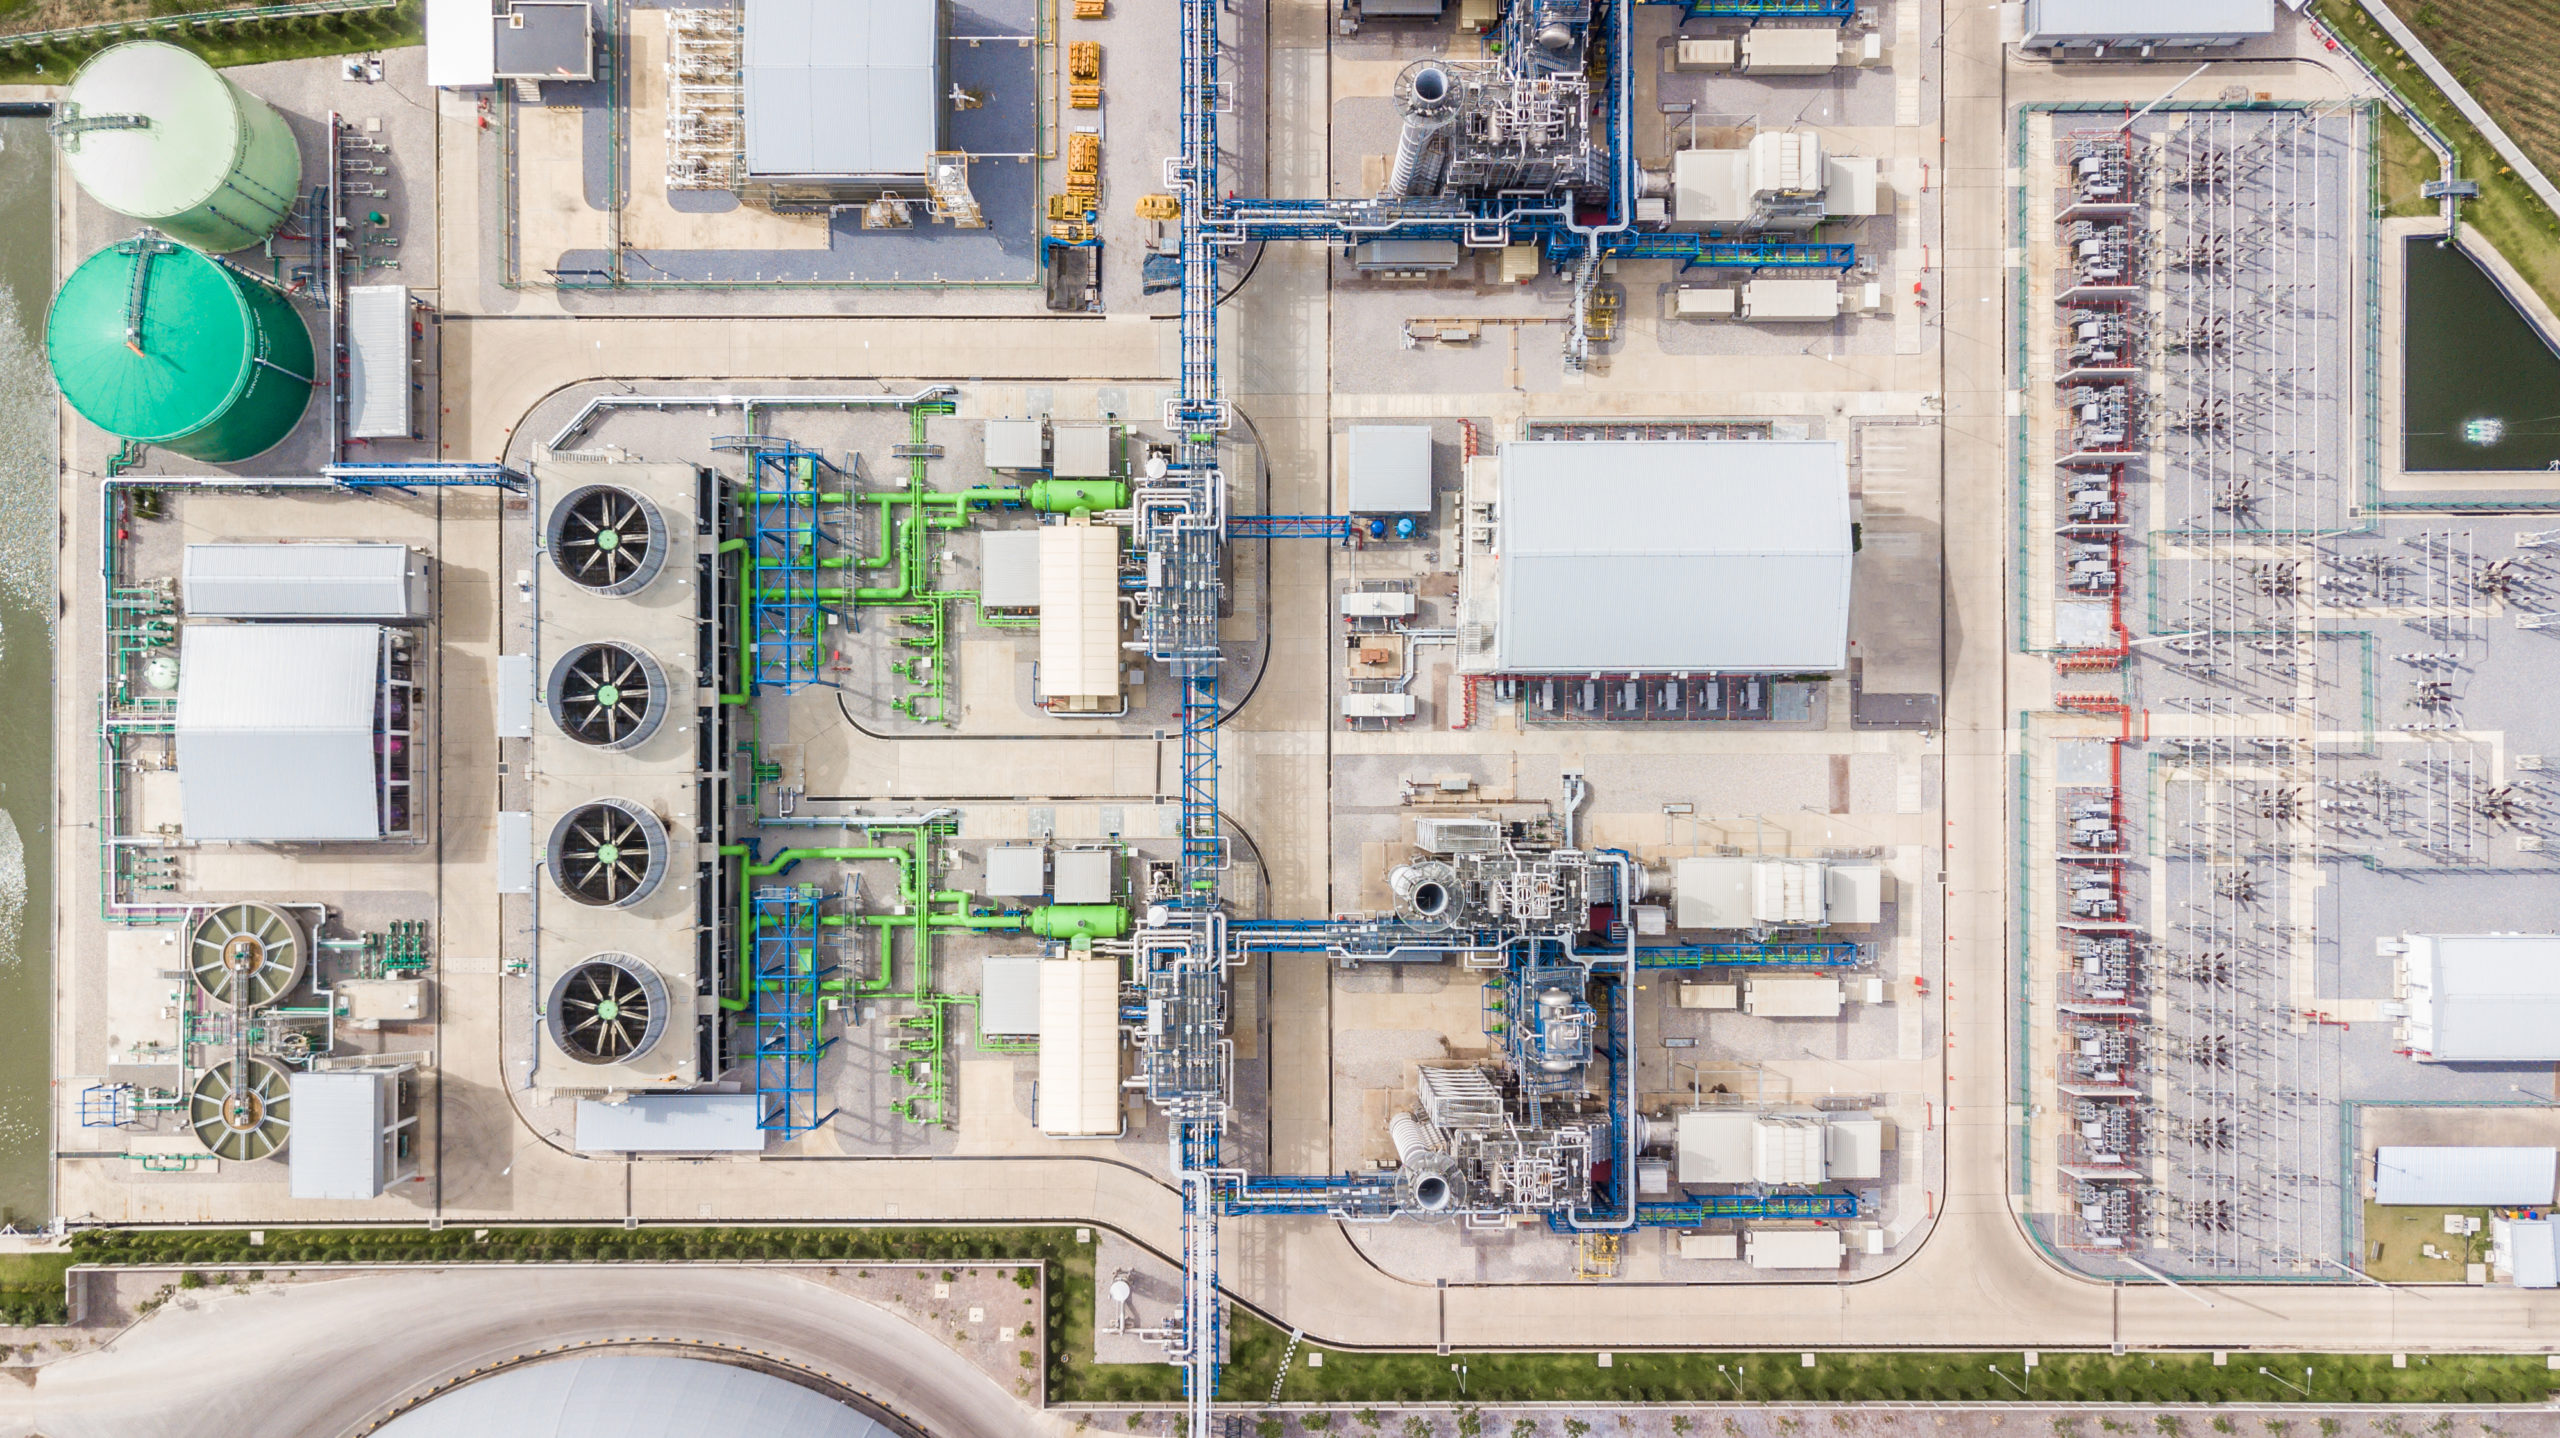 Hydrogen's path into the gas supply chain